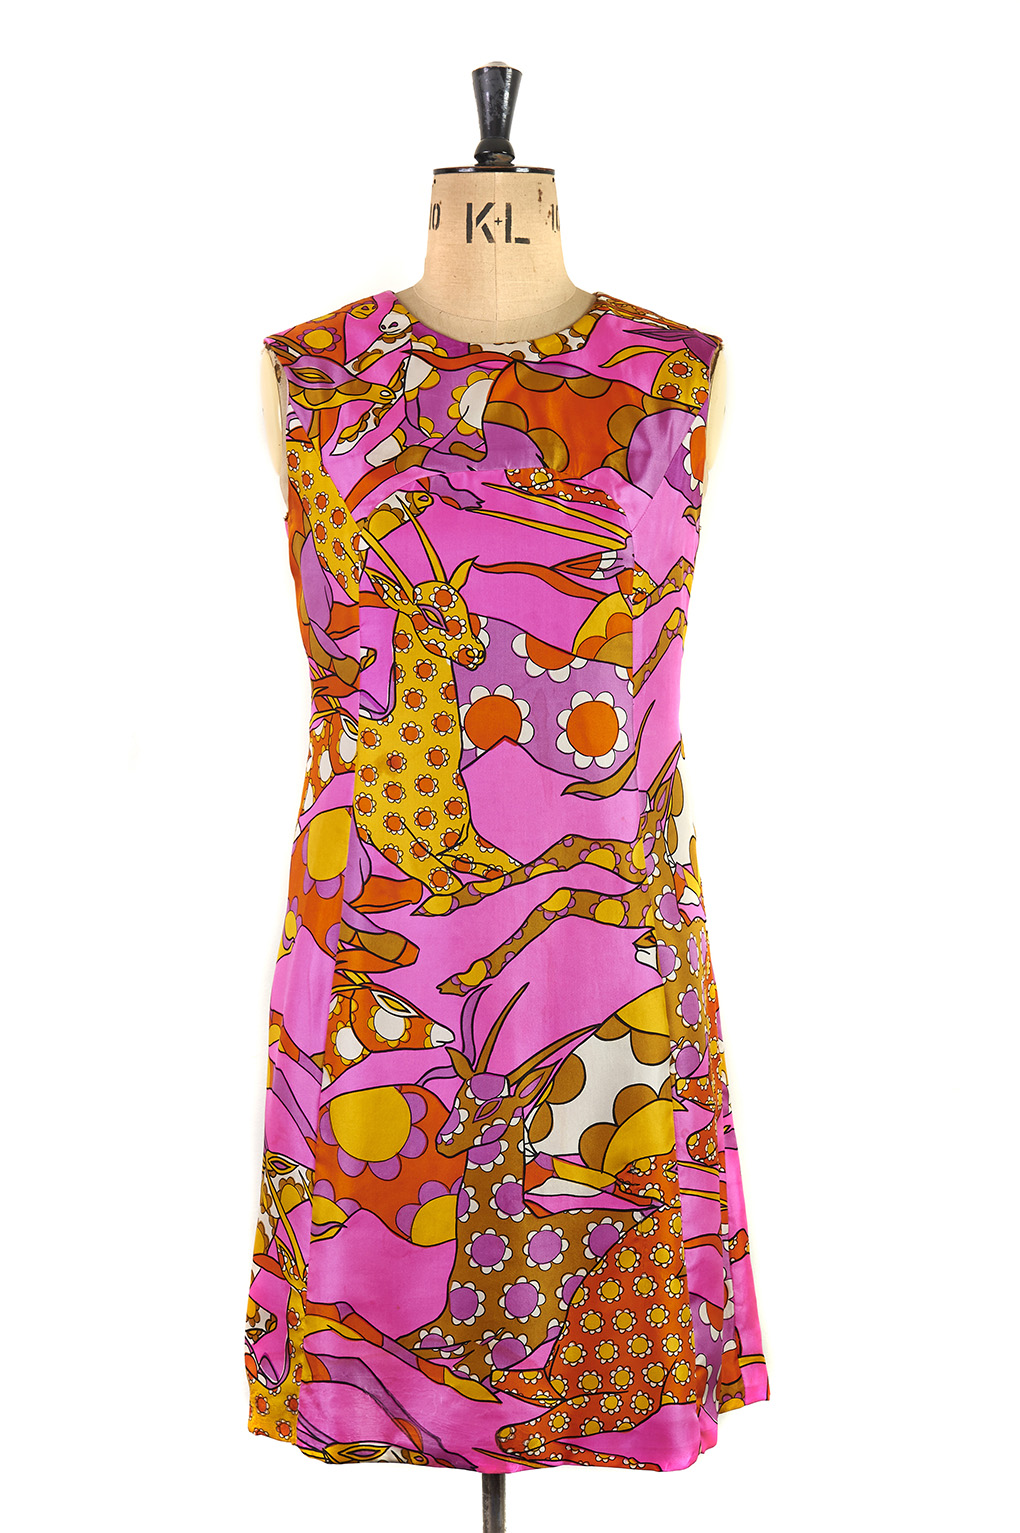 Psychedelic Dress by Saks Fifth Avenue c.1960